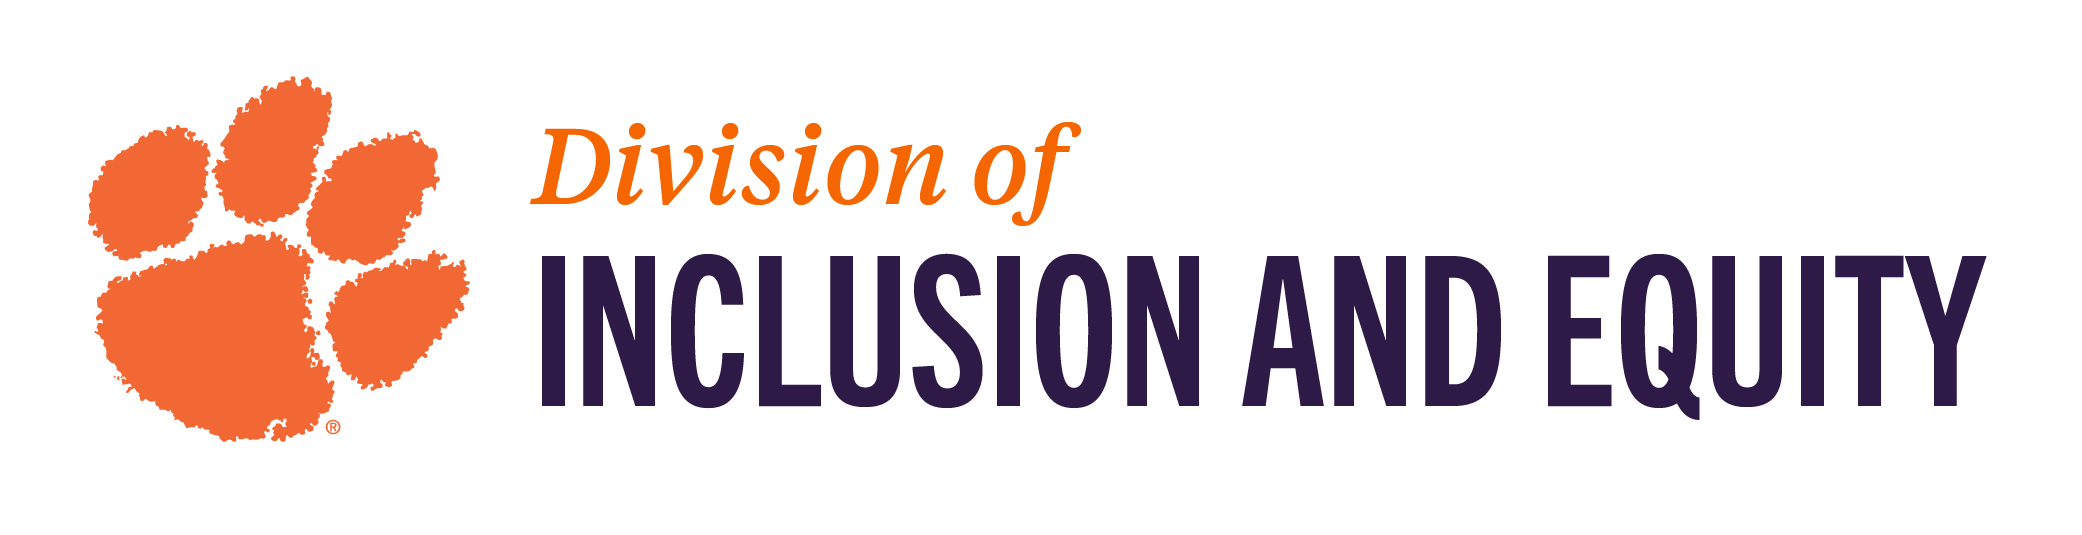 Division of Inclusion and Equity